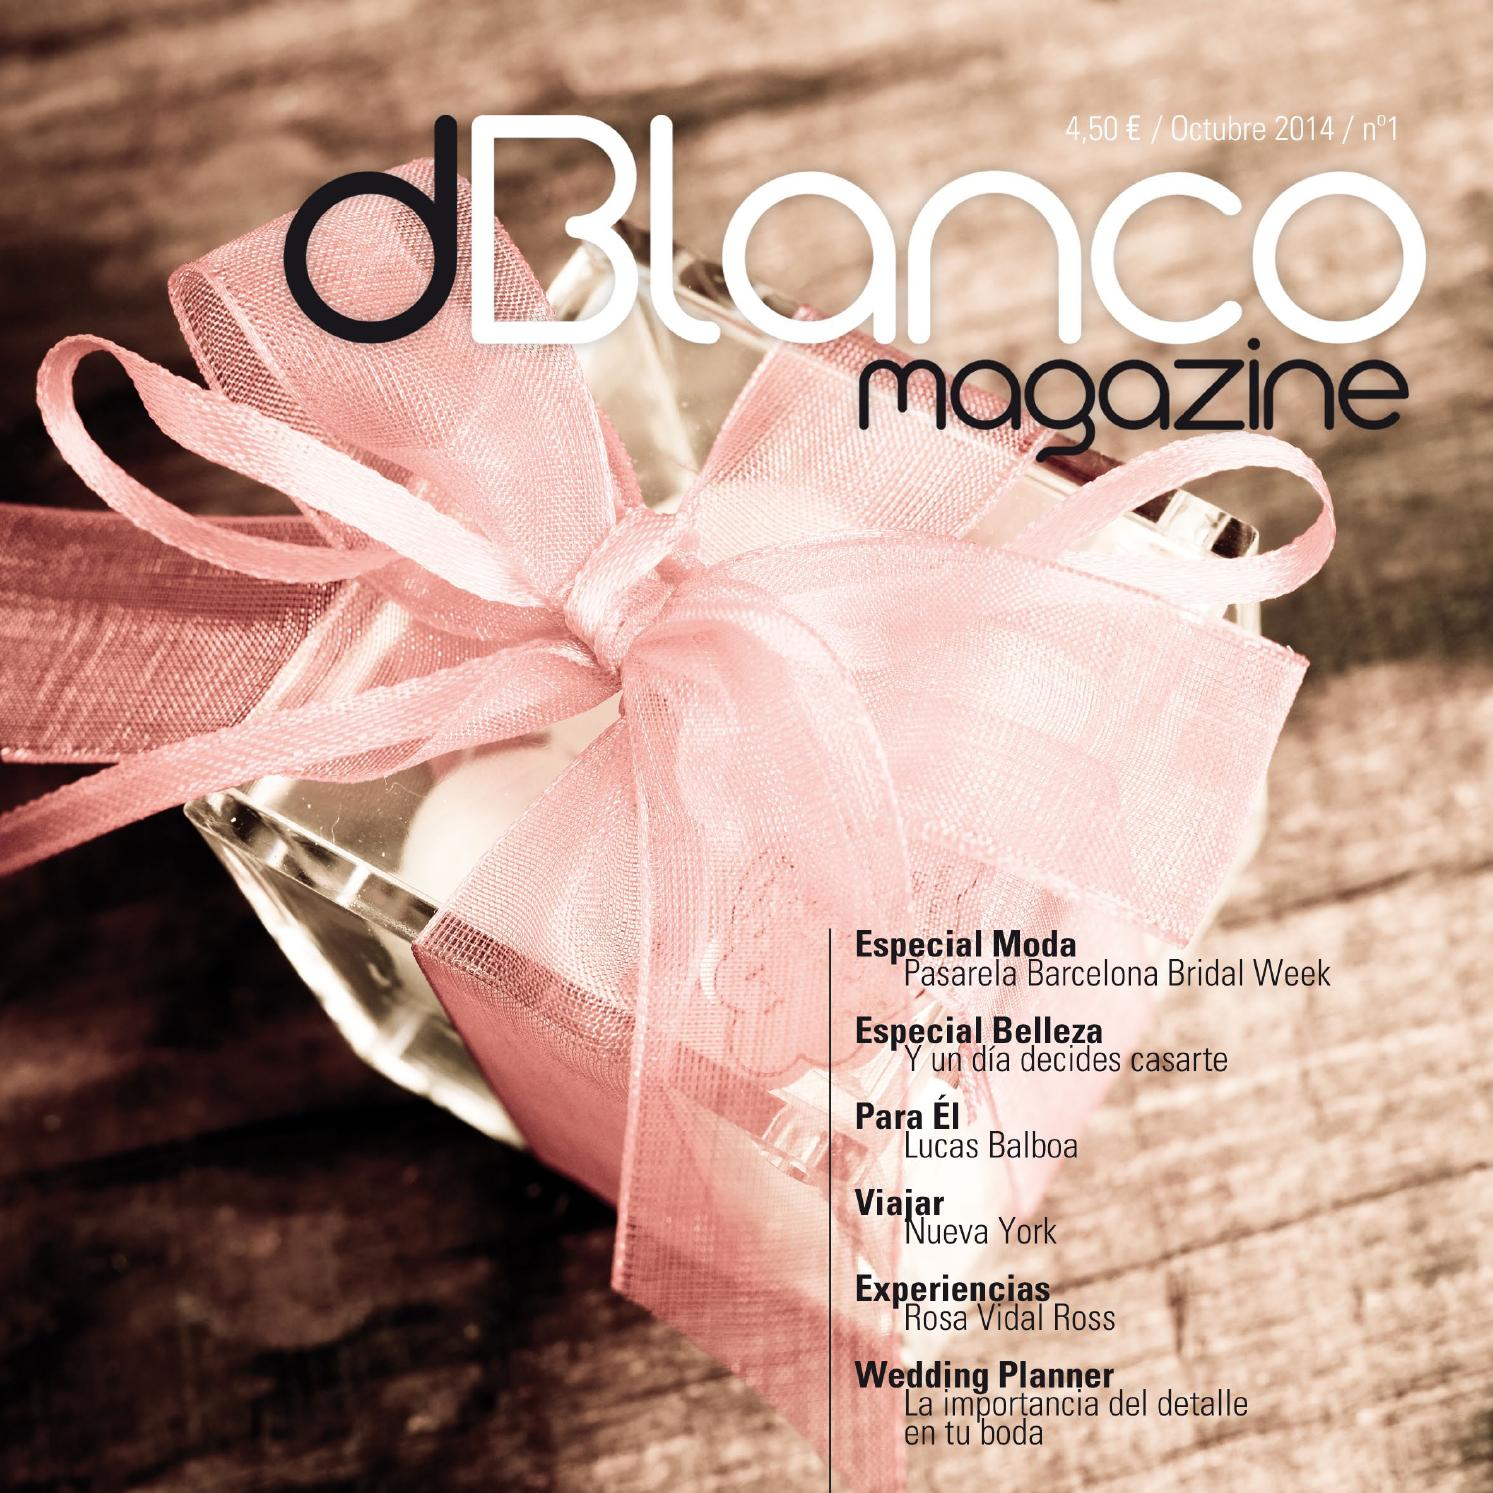 Revista dBlanco magazine by Sonia Barreto - issuu